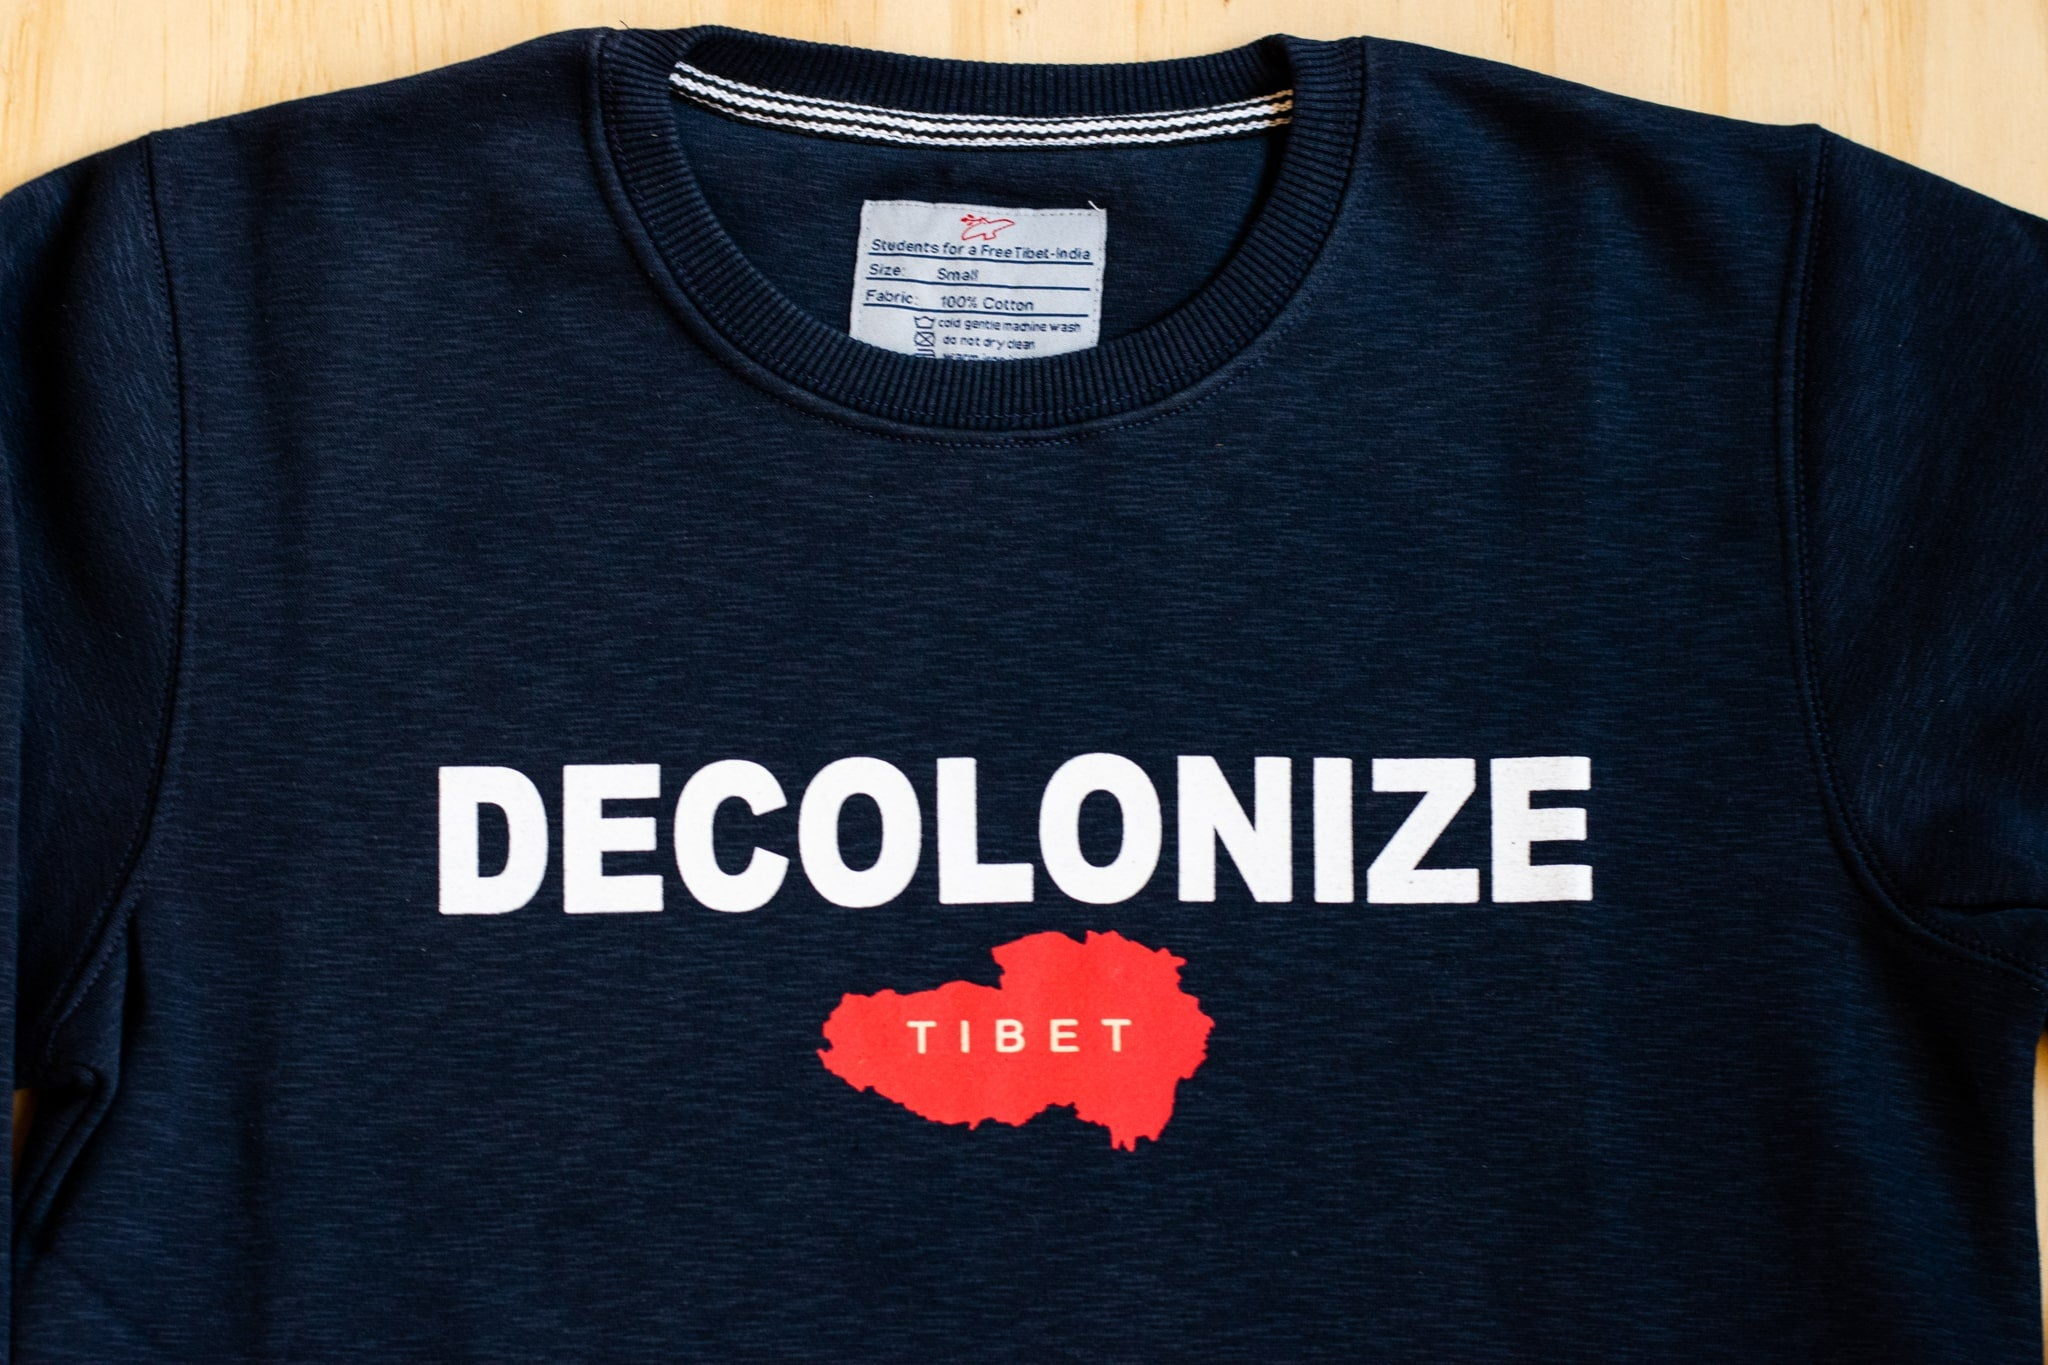 DECOLONIZE Crewneck Sweater WITH Pockets